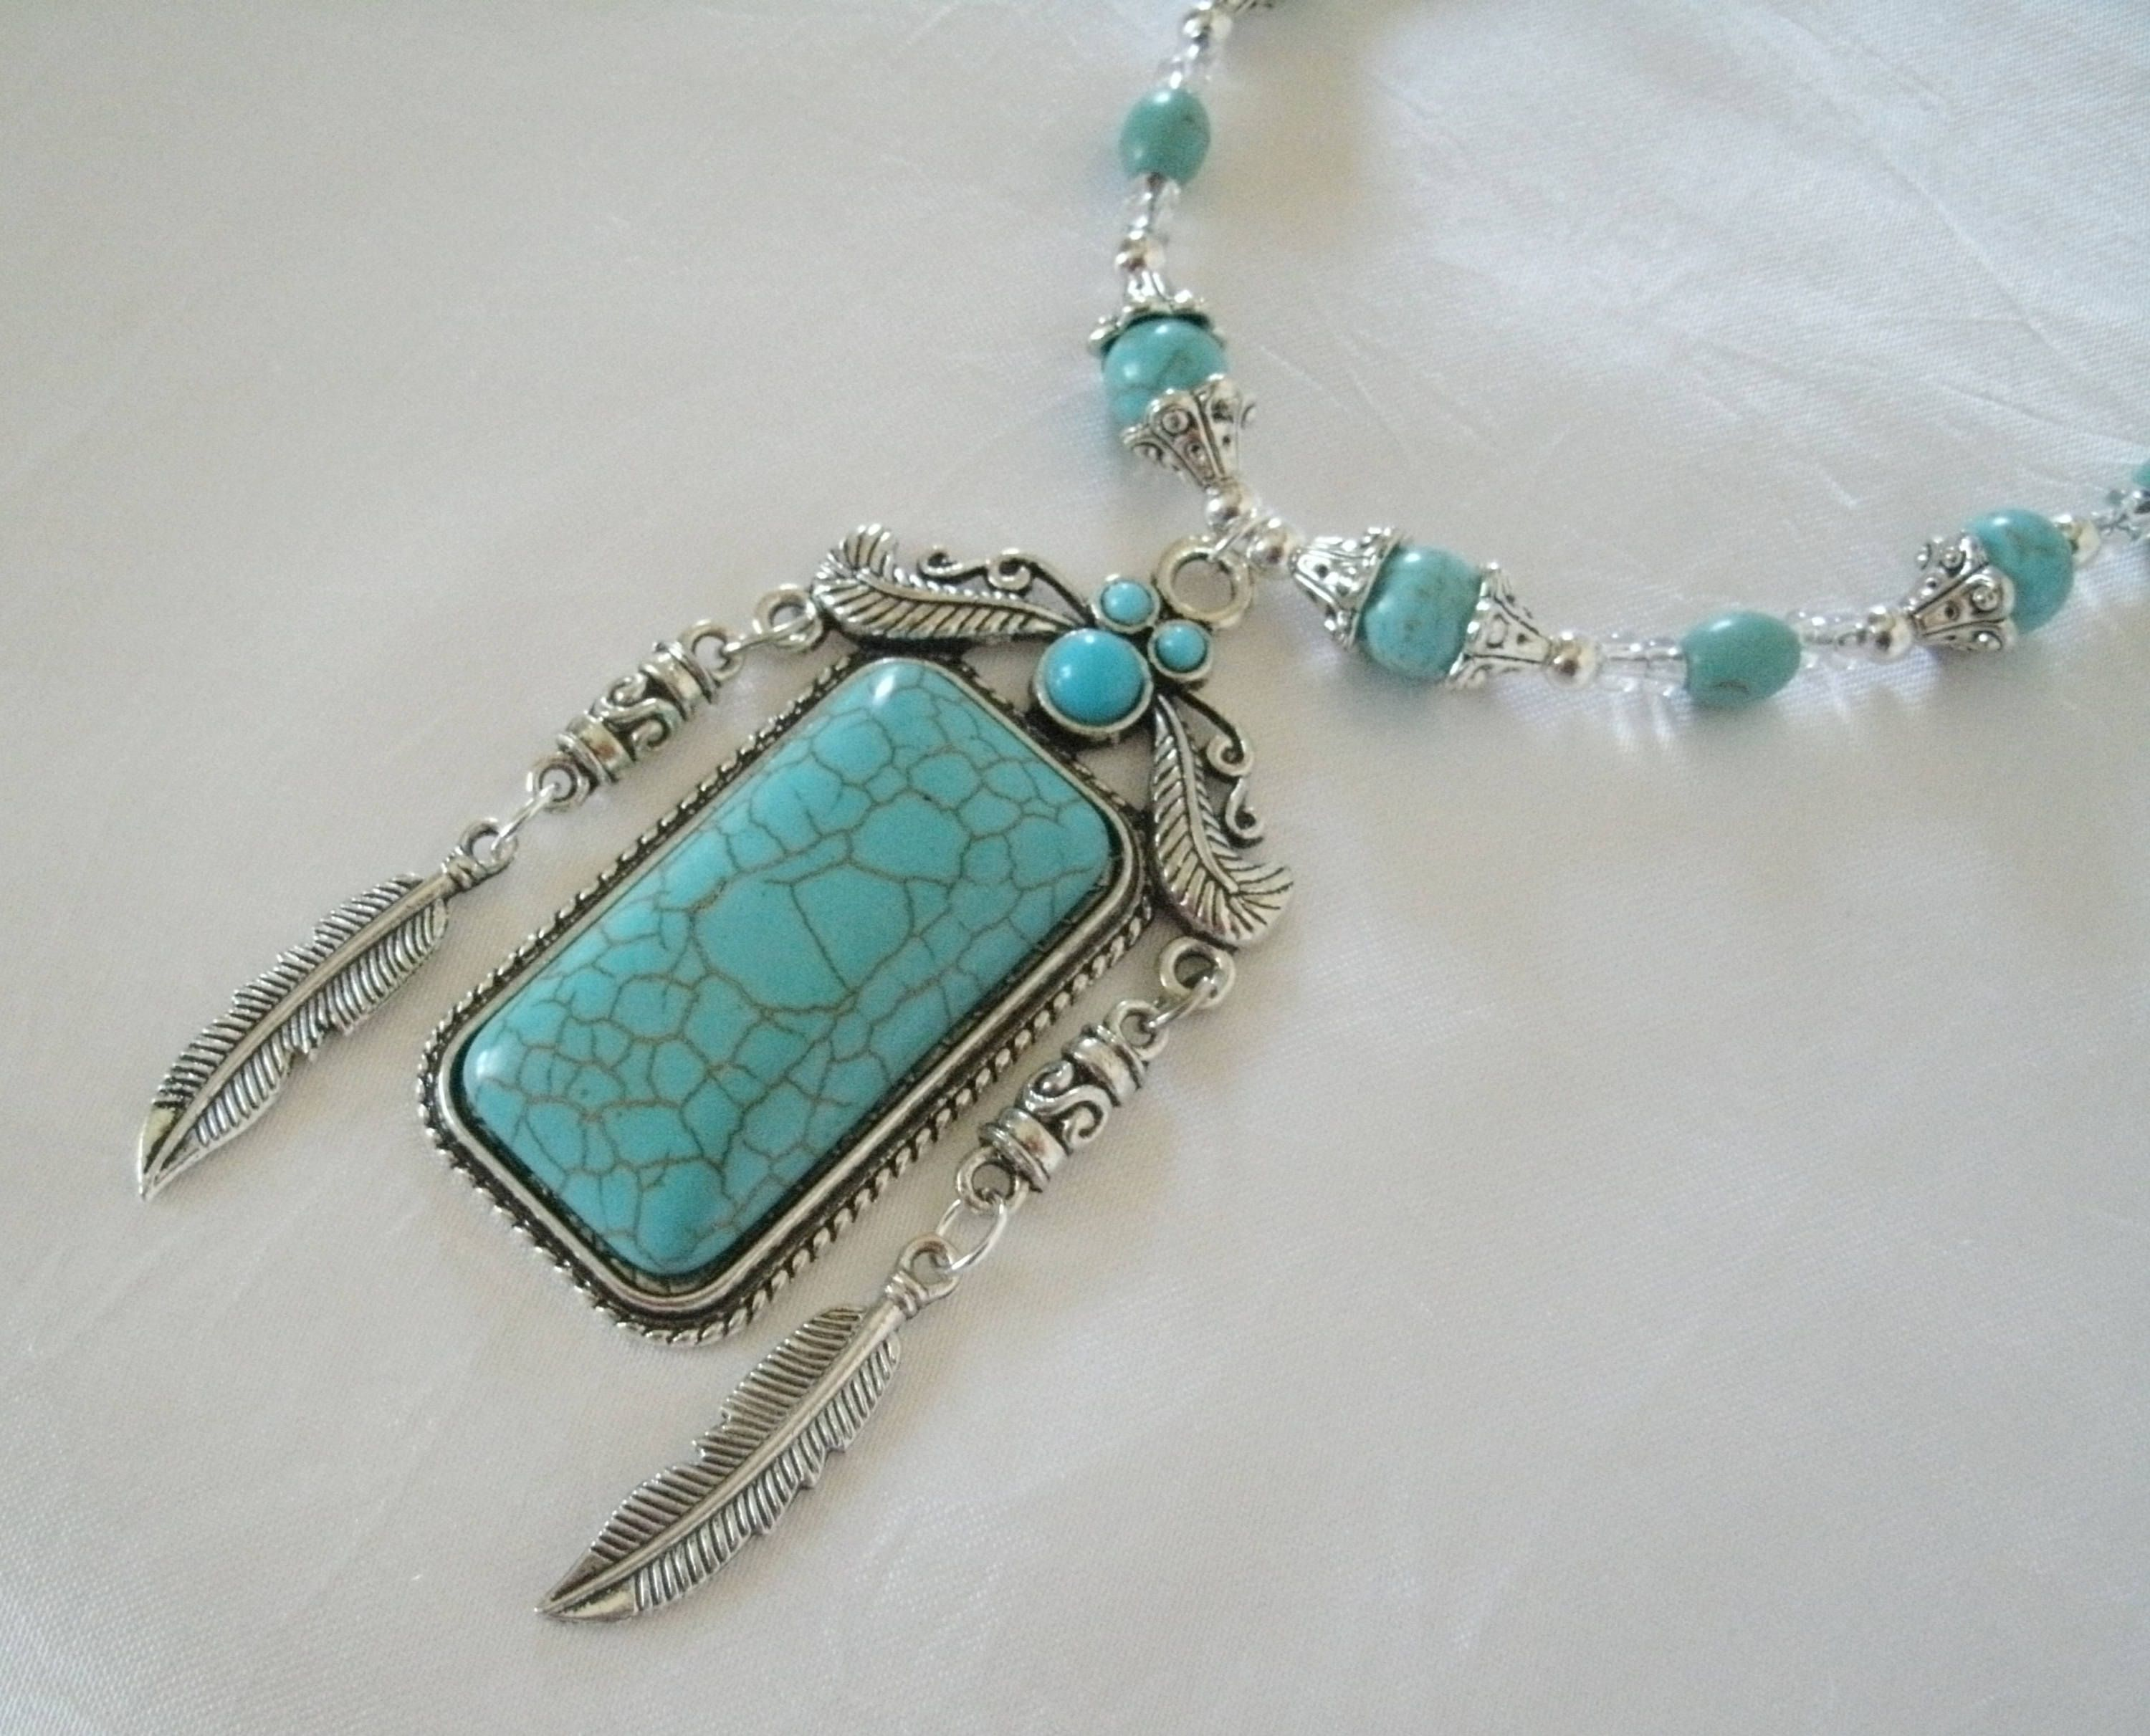 bojo american southwest on etsy jewellery western by native long navajo santafecollection turquoise necklace beaded her jewelry for pin